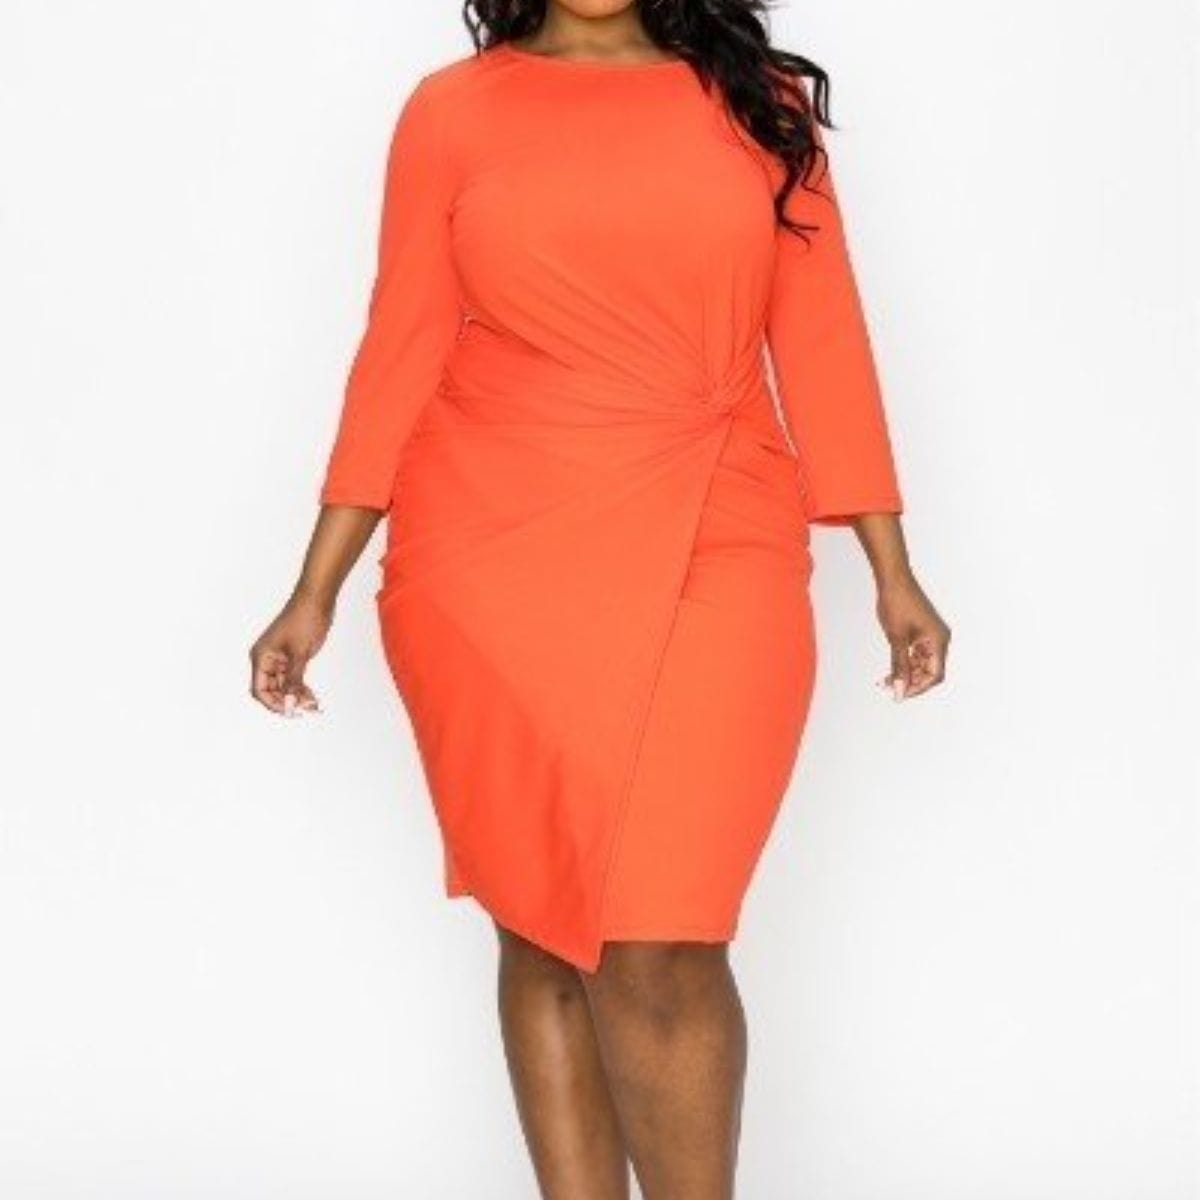 Solid Bodycon Dress - Posh Shoppe